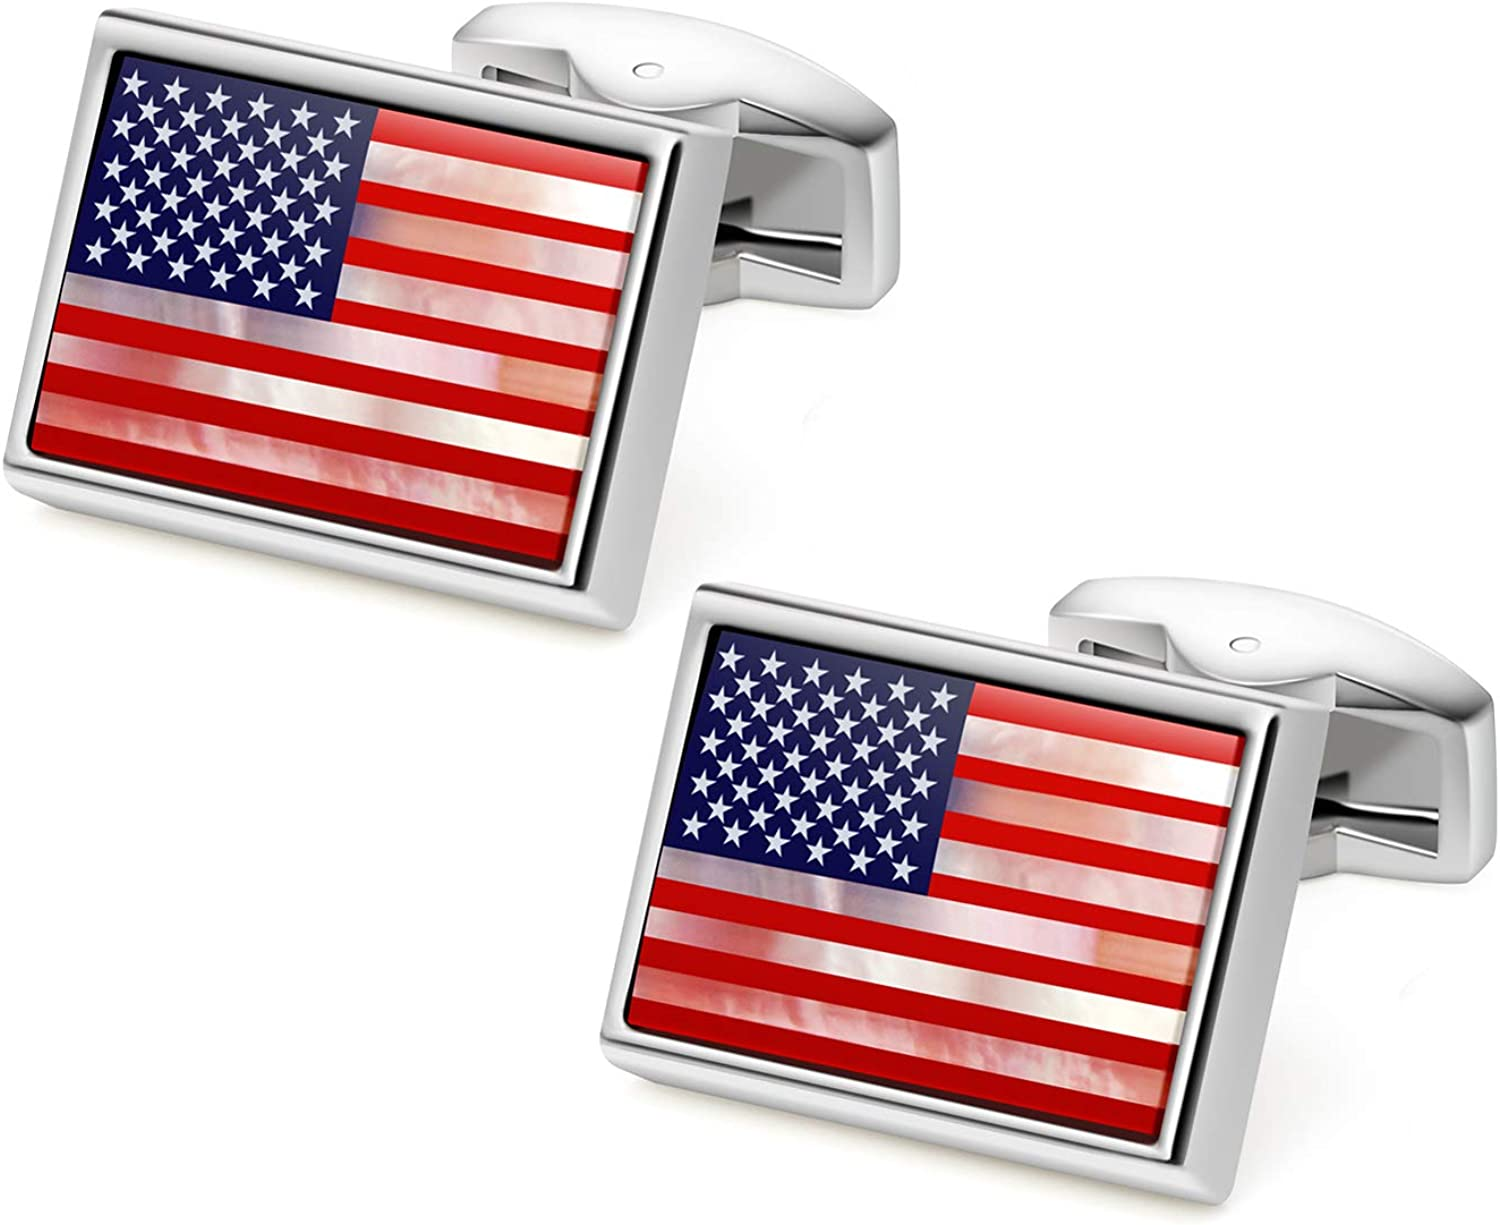 VIILOCK American Flag Cufflinks for Men Mother of Pearl The Stars and Stripes Cuff Links Business Gift